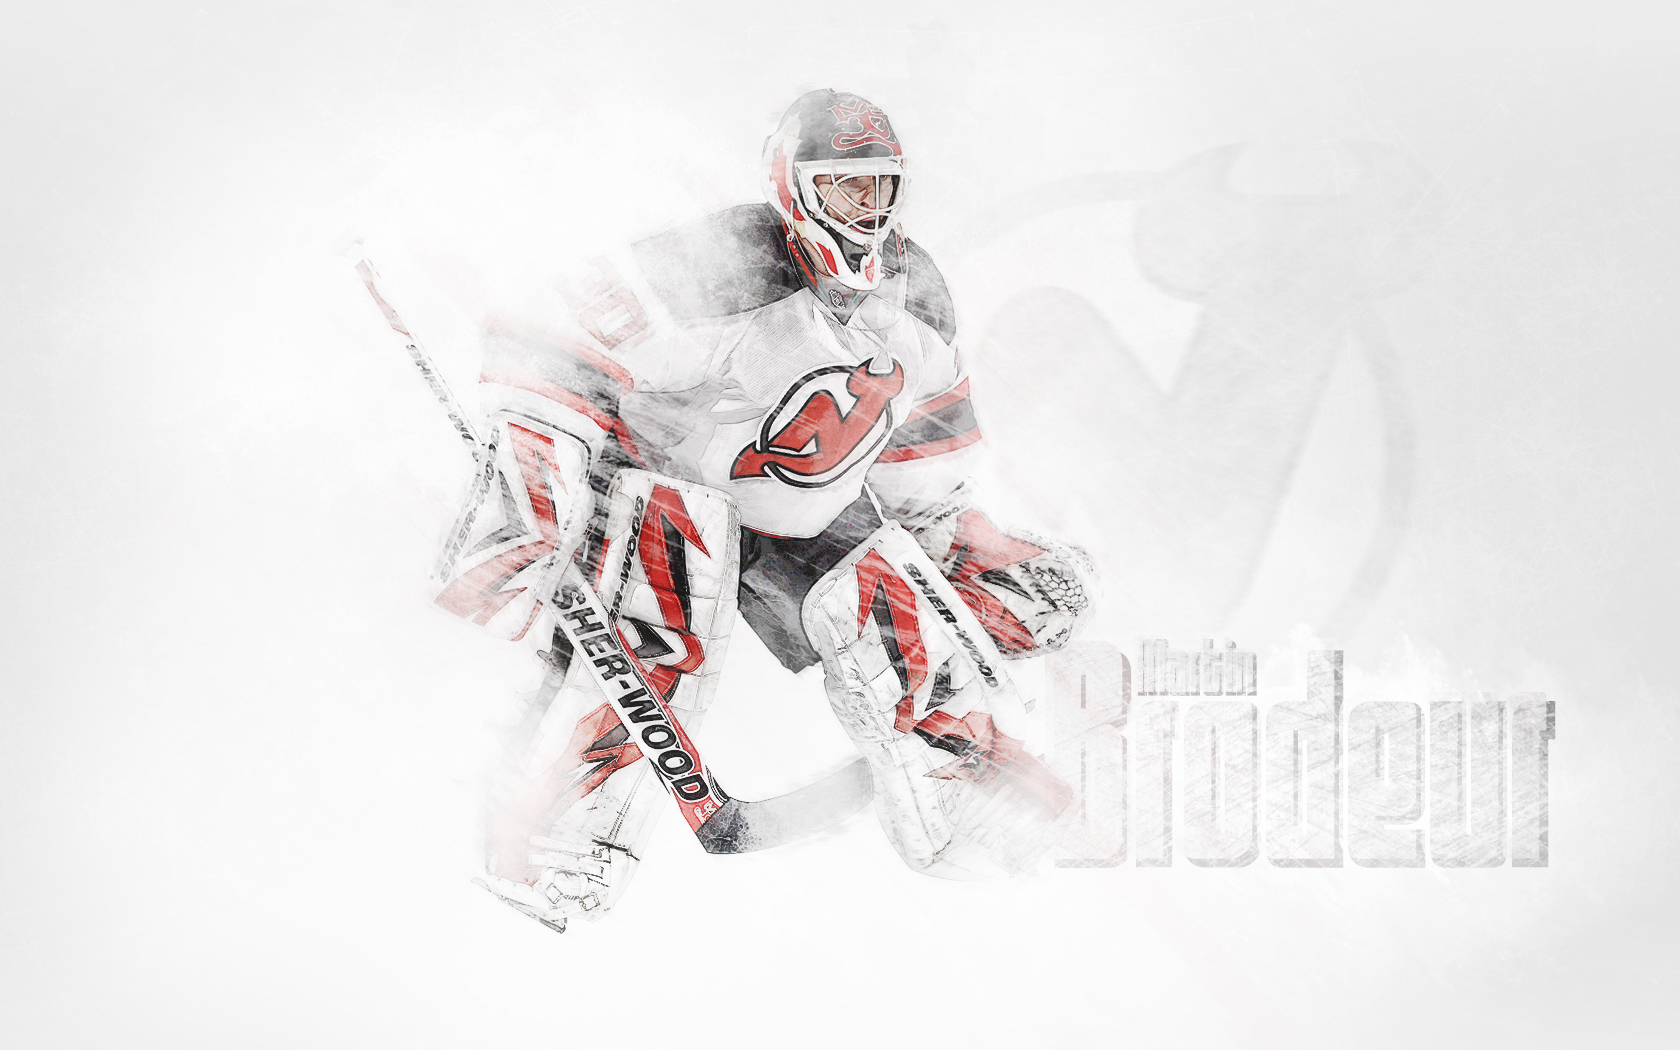 1680x1050 - New Jersey Devils Wallpapers 25